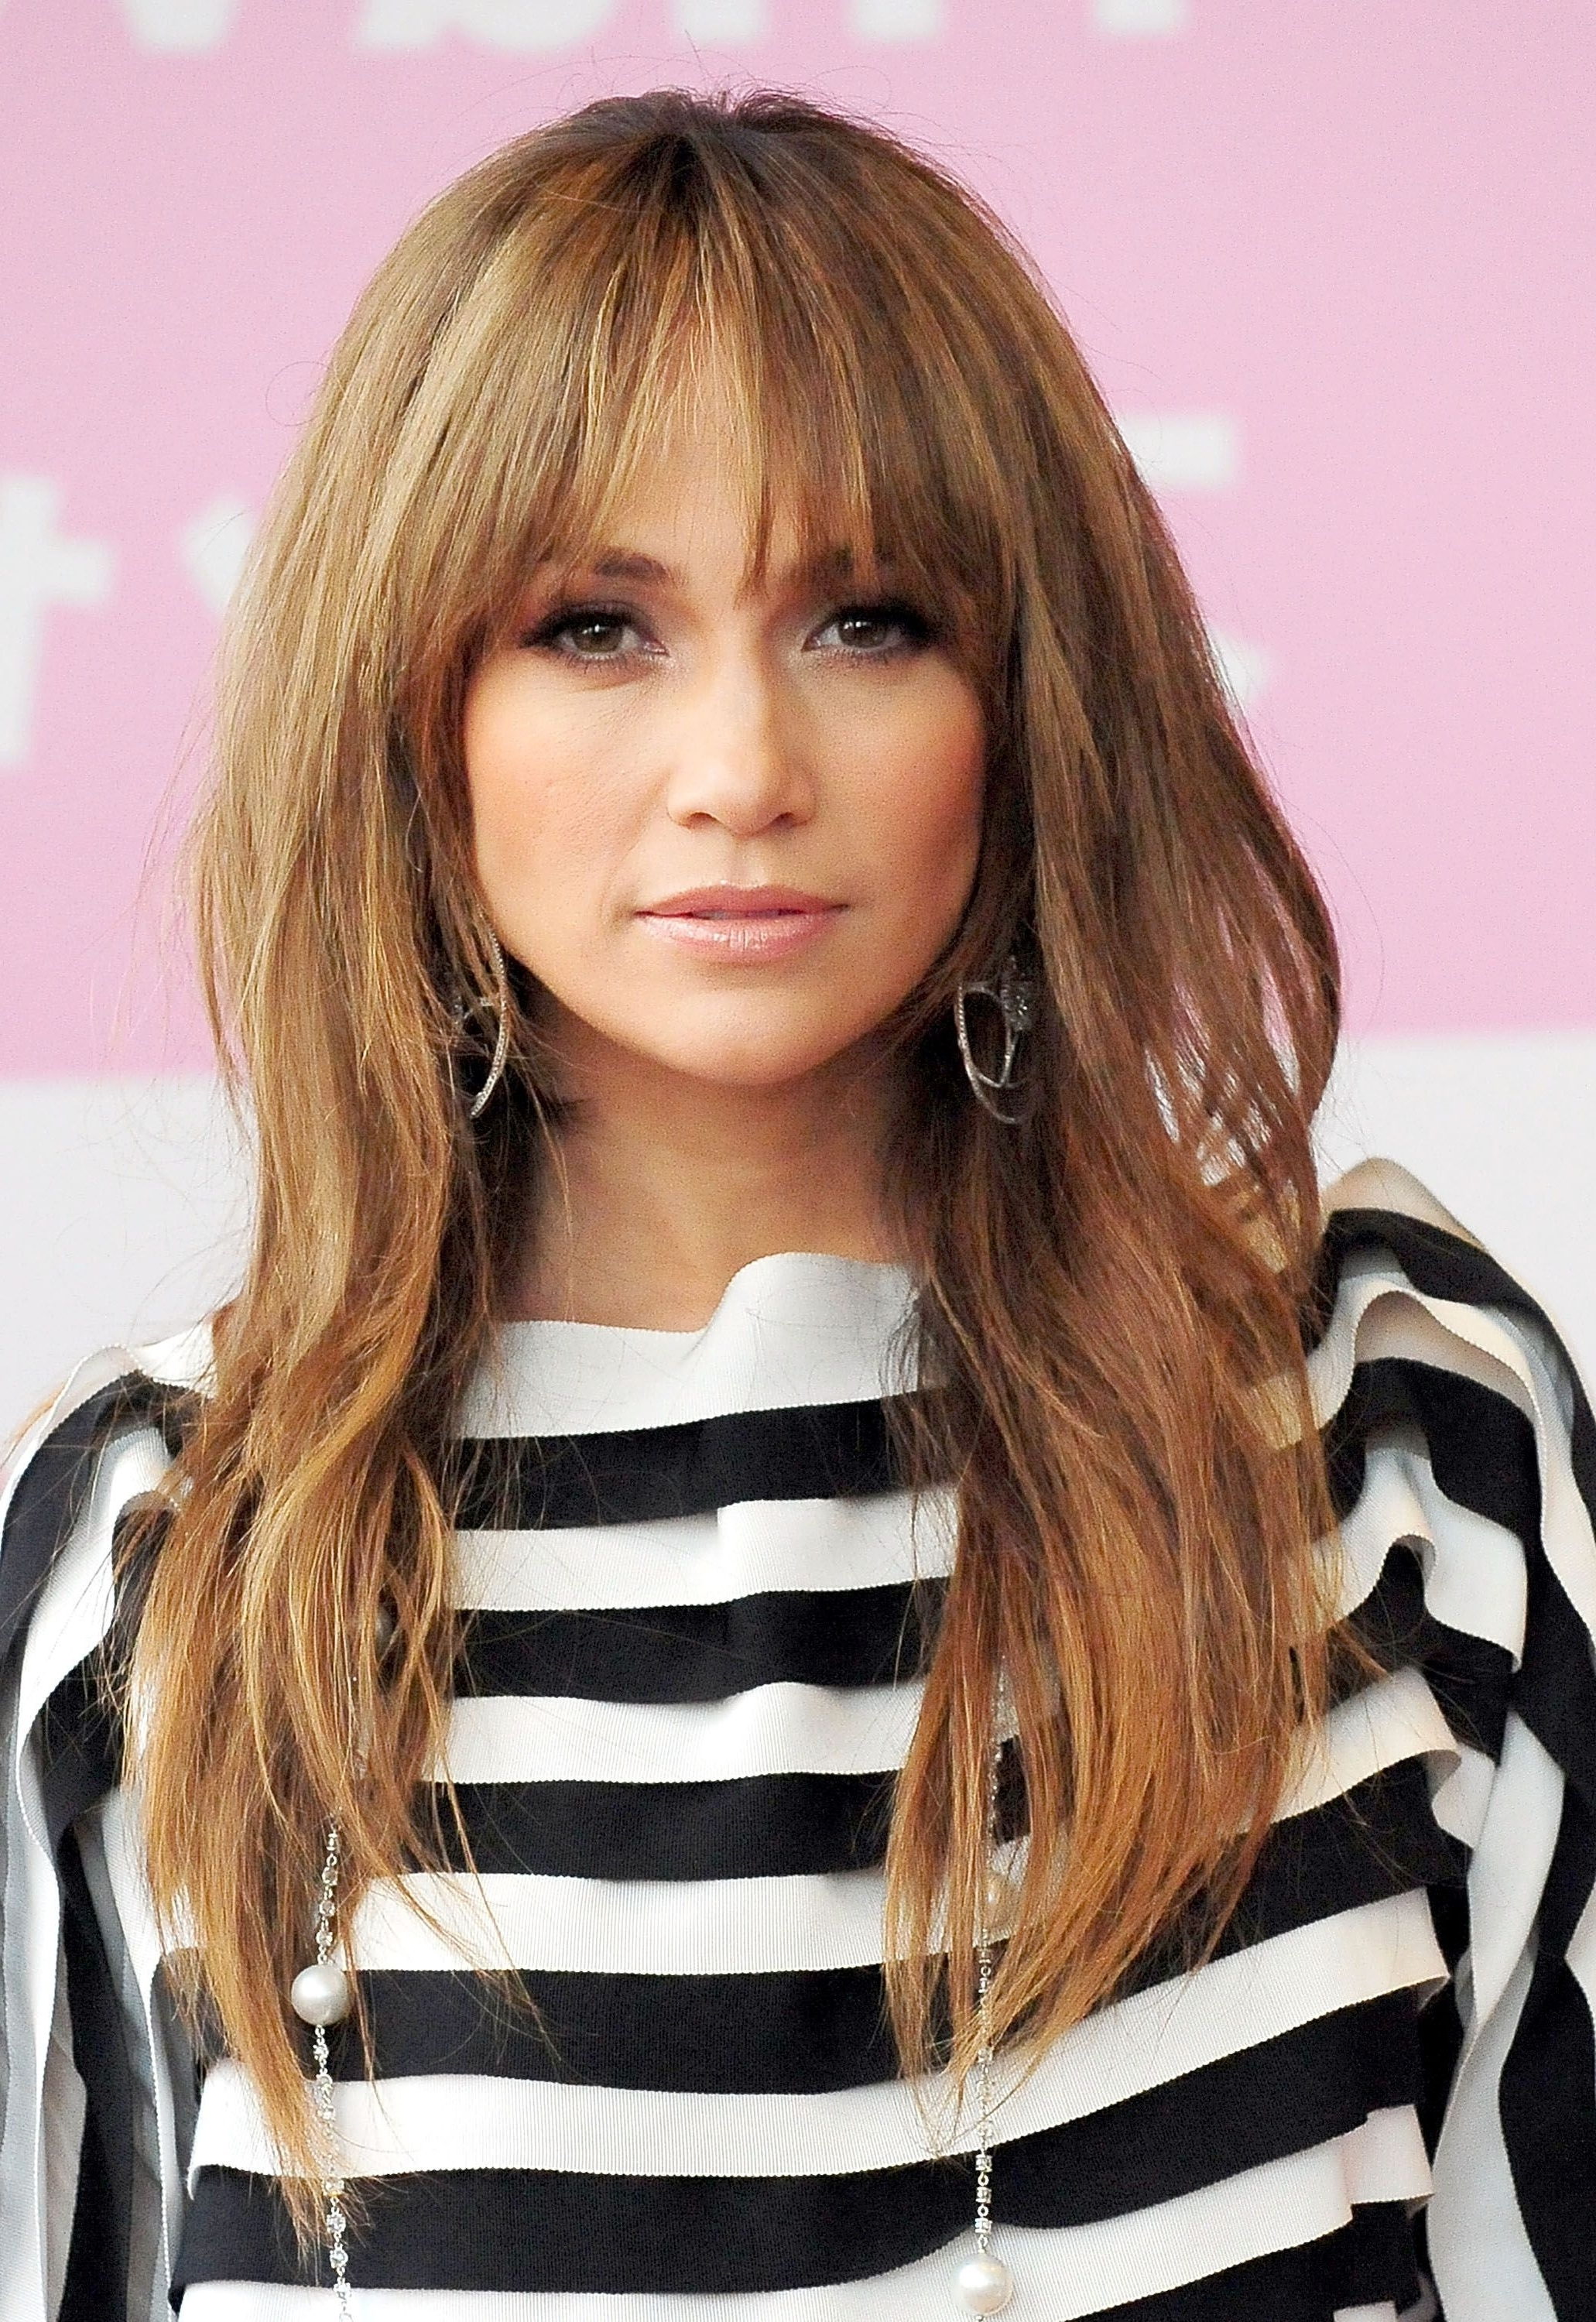 Wispy Bangs, Long Locks In Most Popular Shaggy Long Haircuts With Bangs (View 14 of 15)